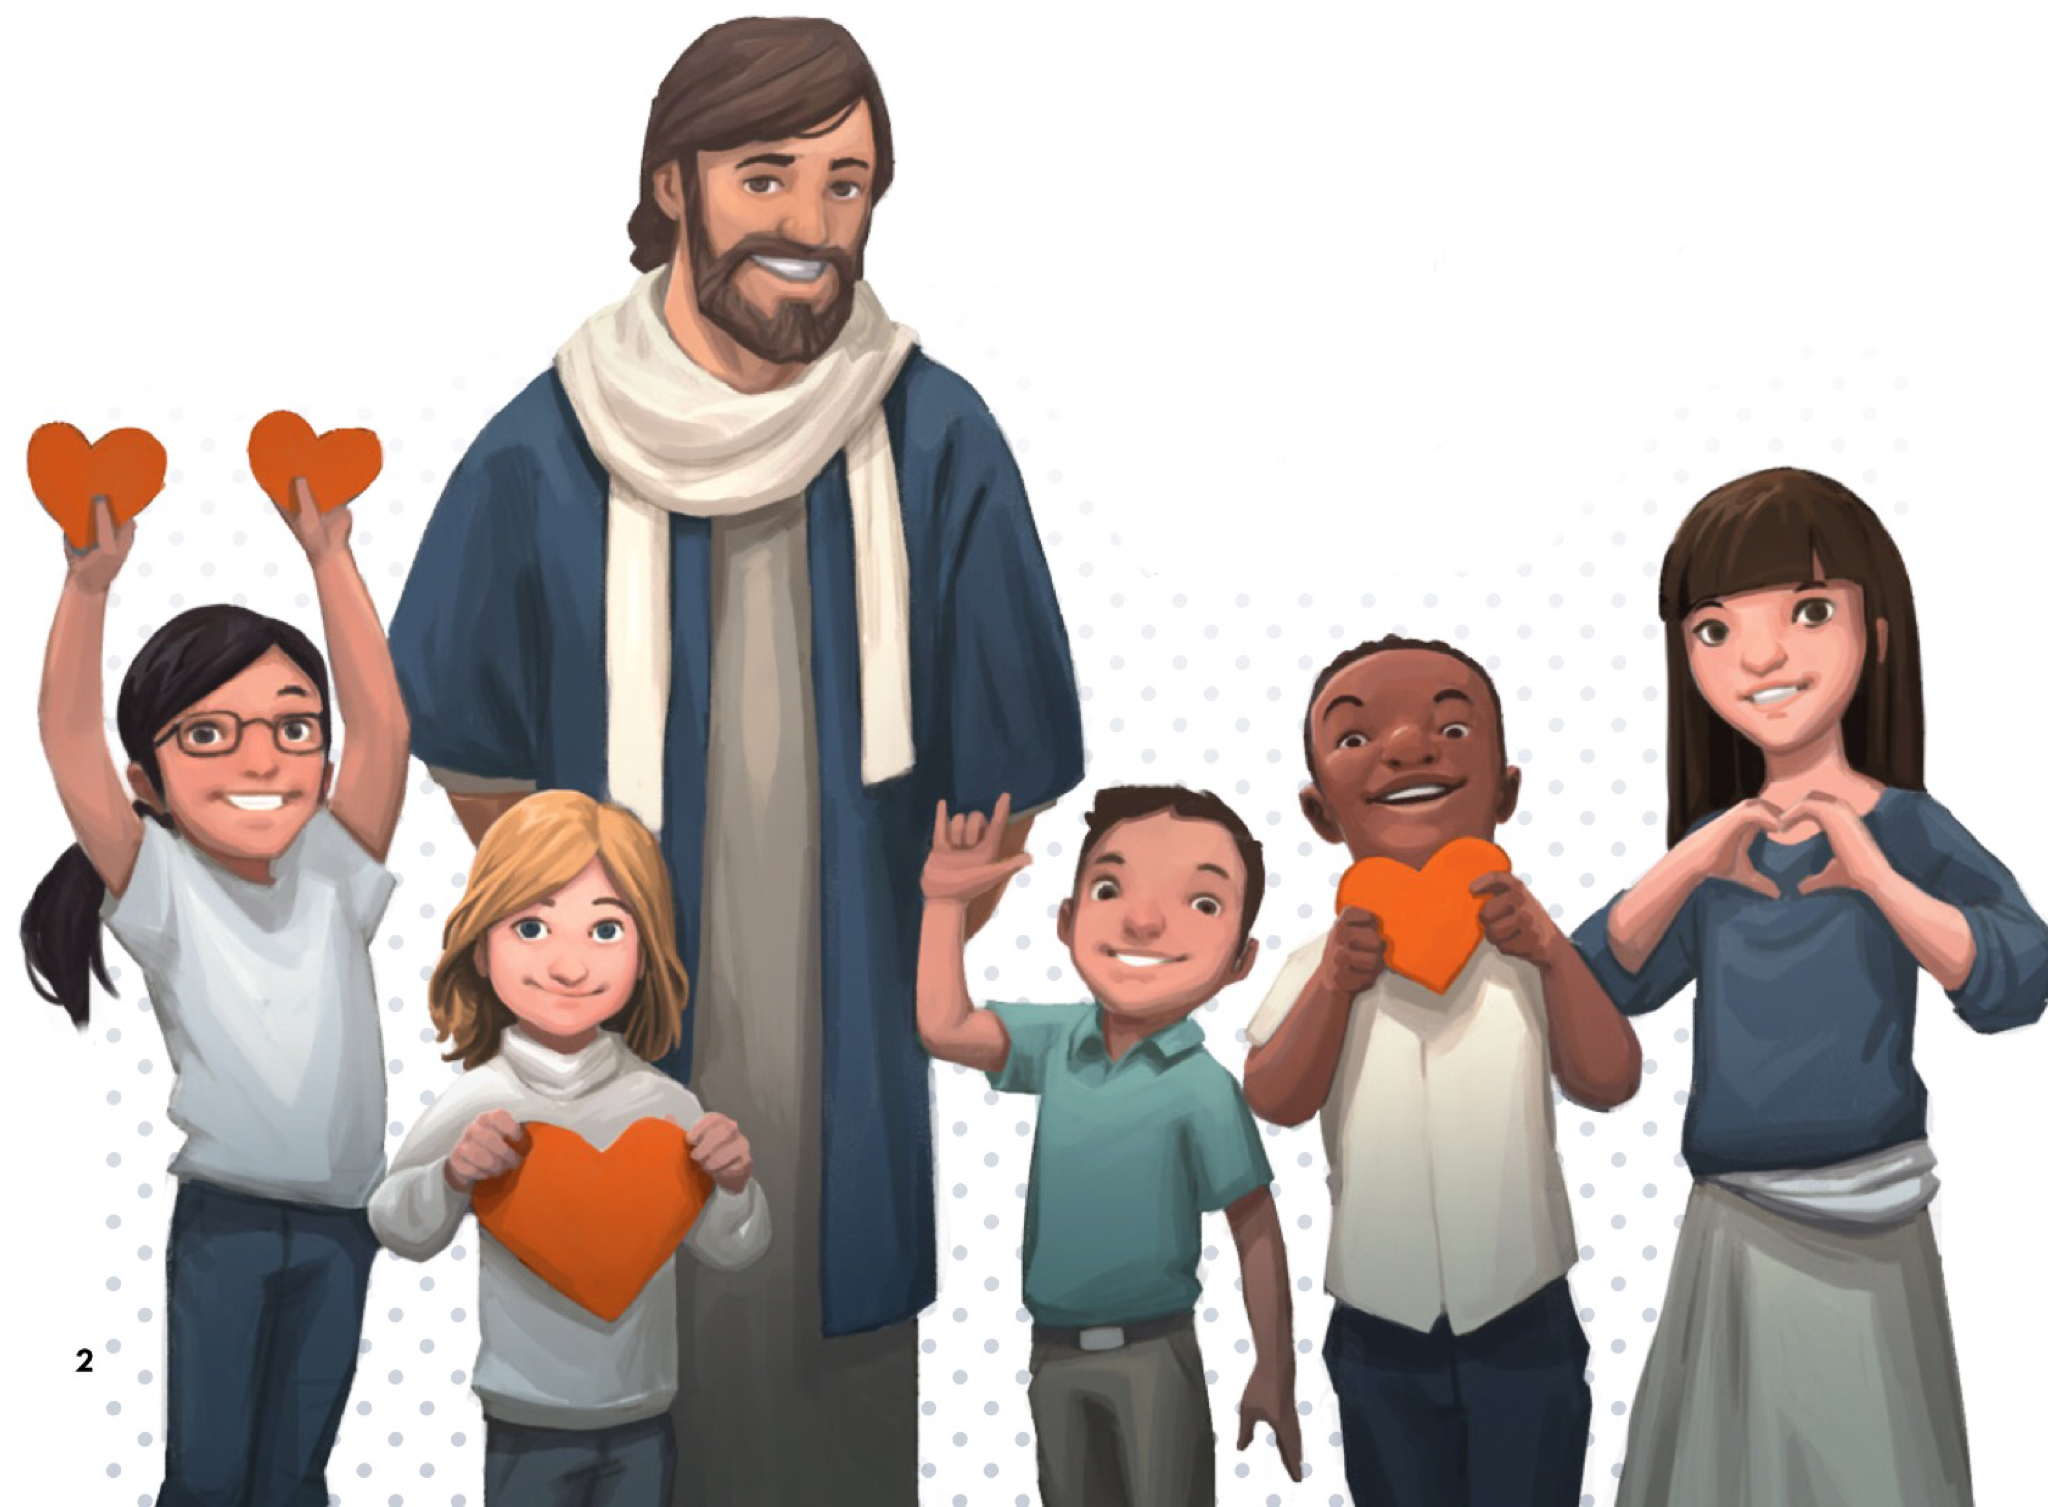 Christ Latter-Day Of Mormon Saints Jesus Book PNG Image